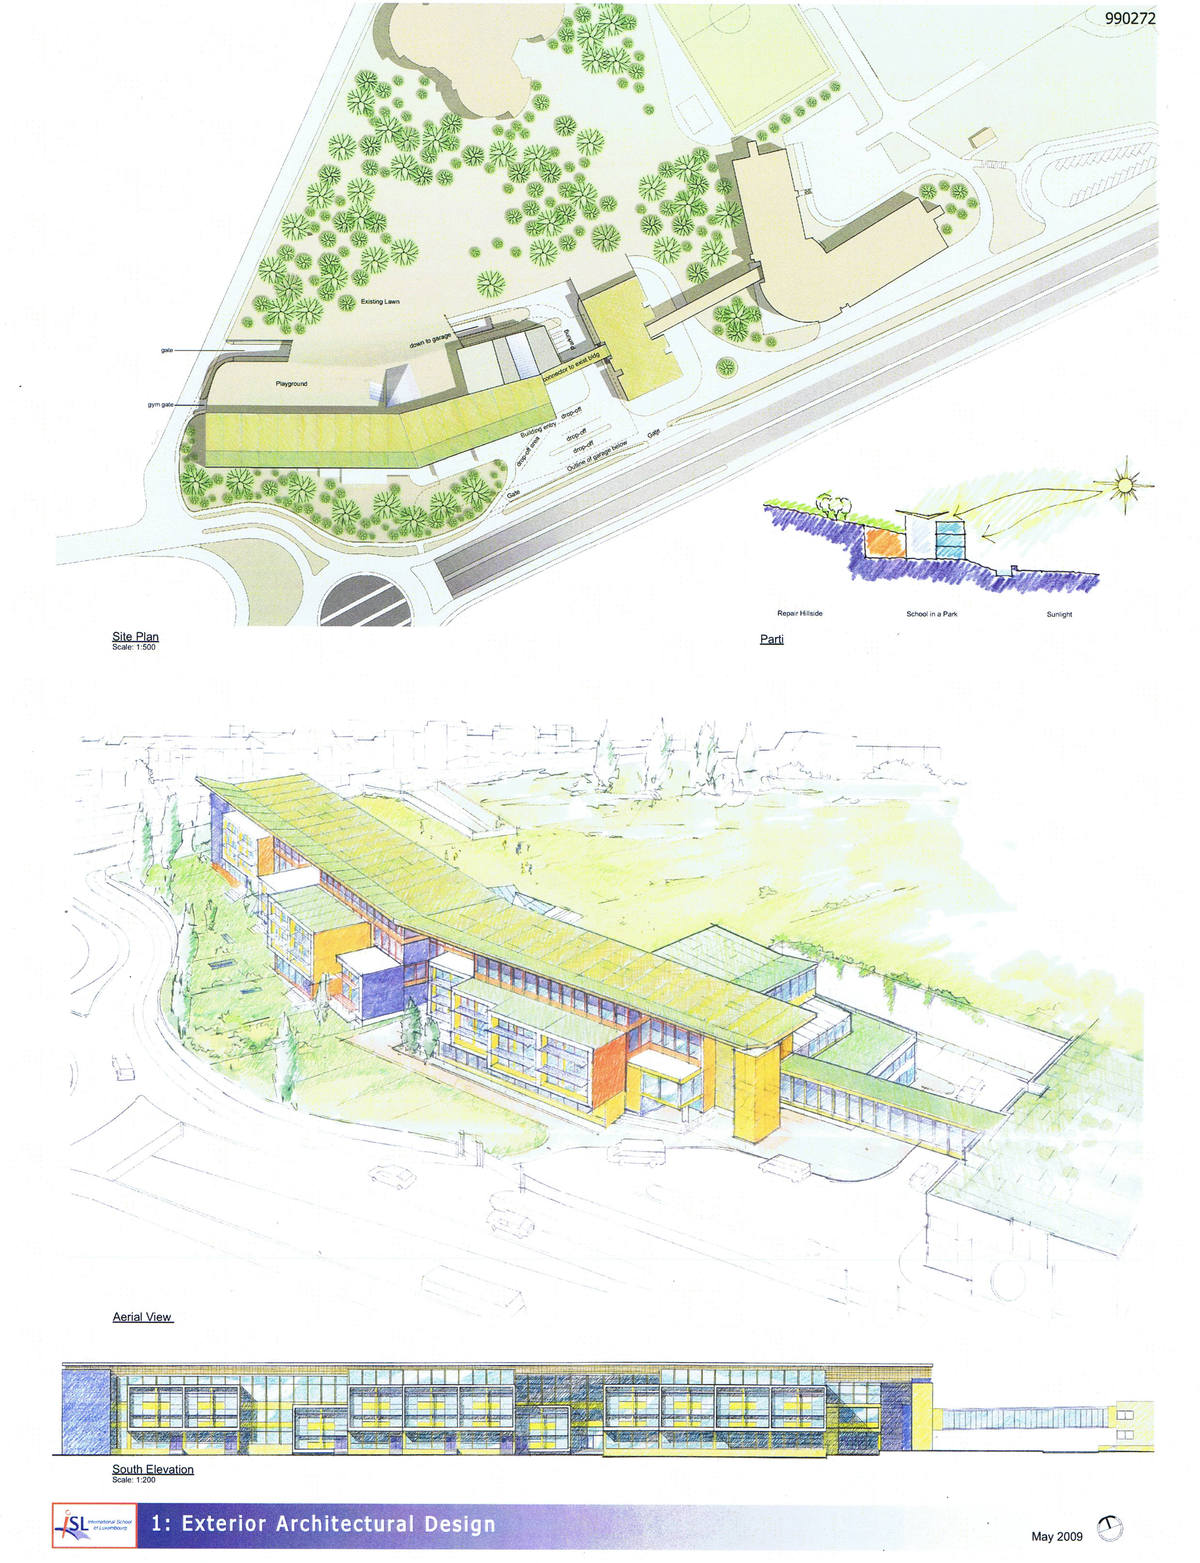 Site, Perspective and Front Elevation